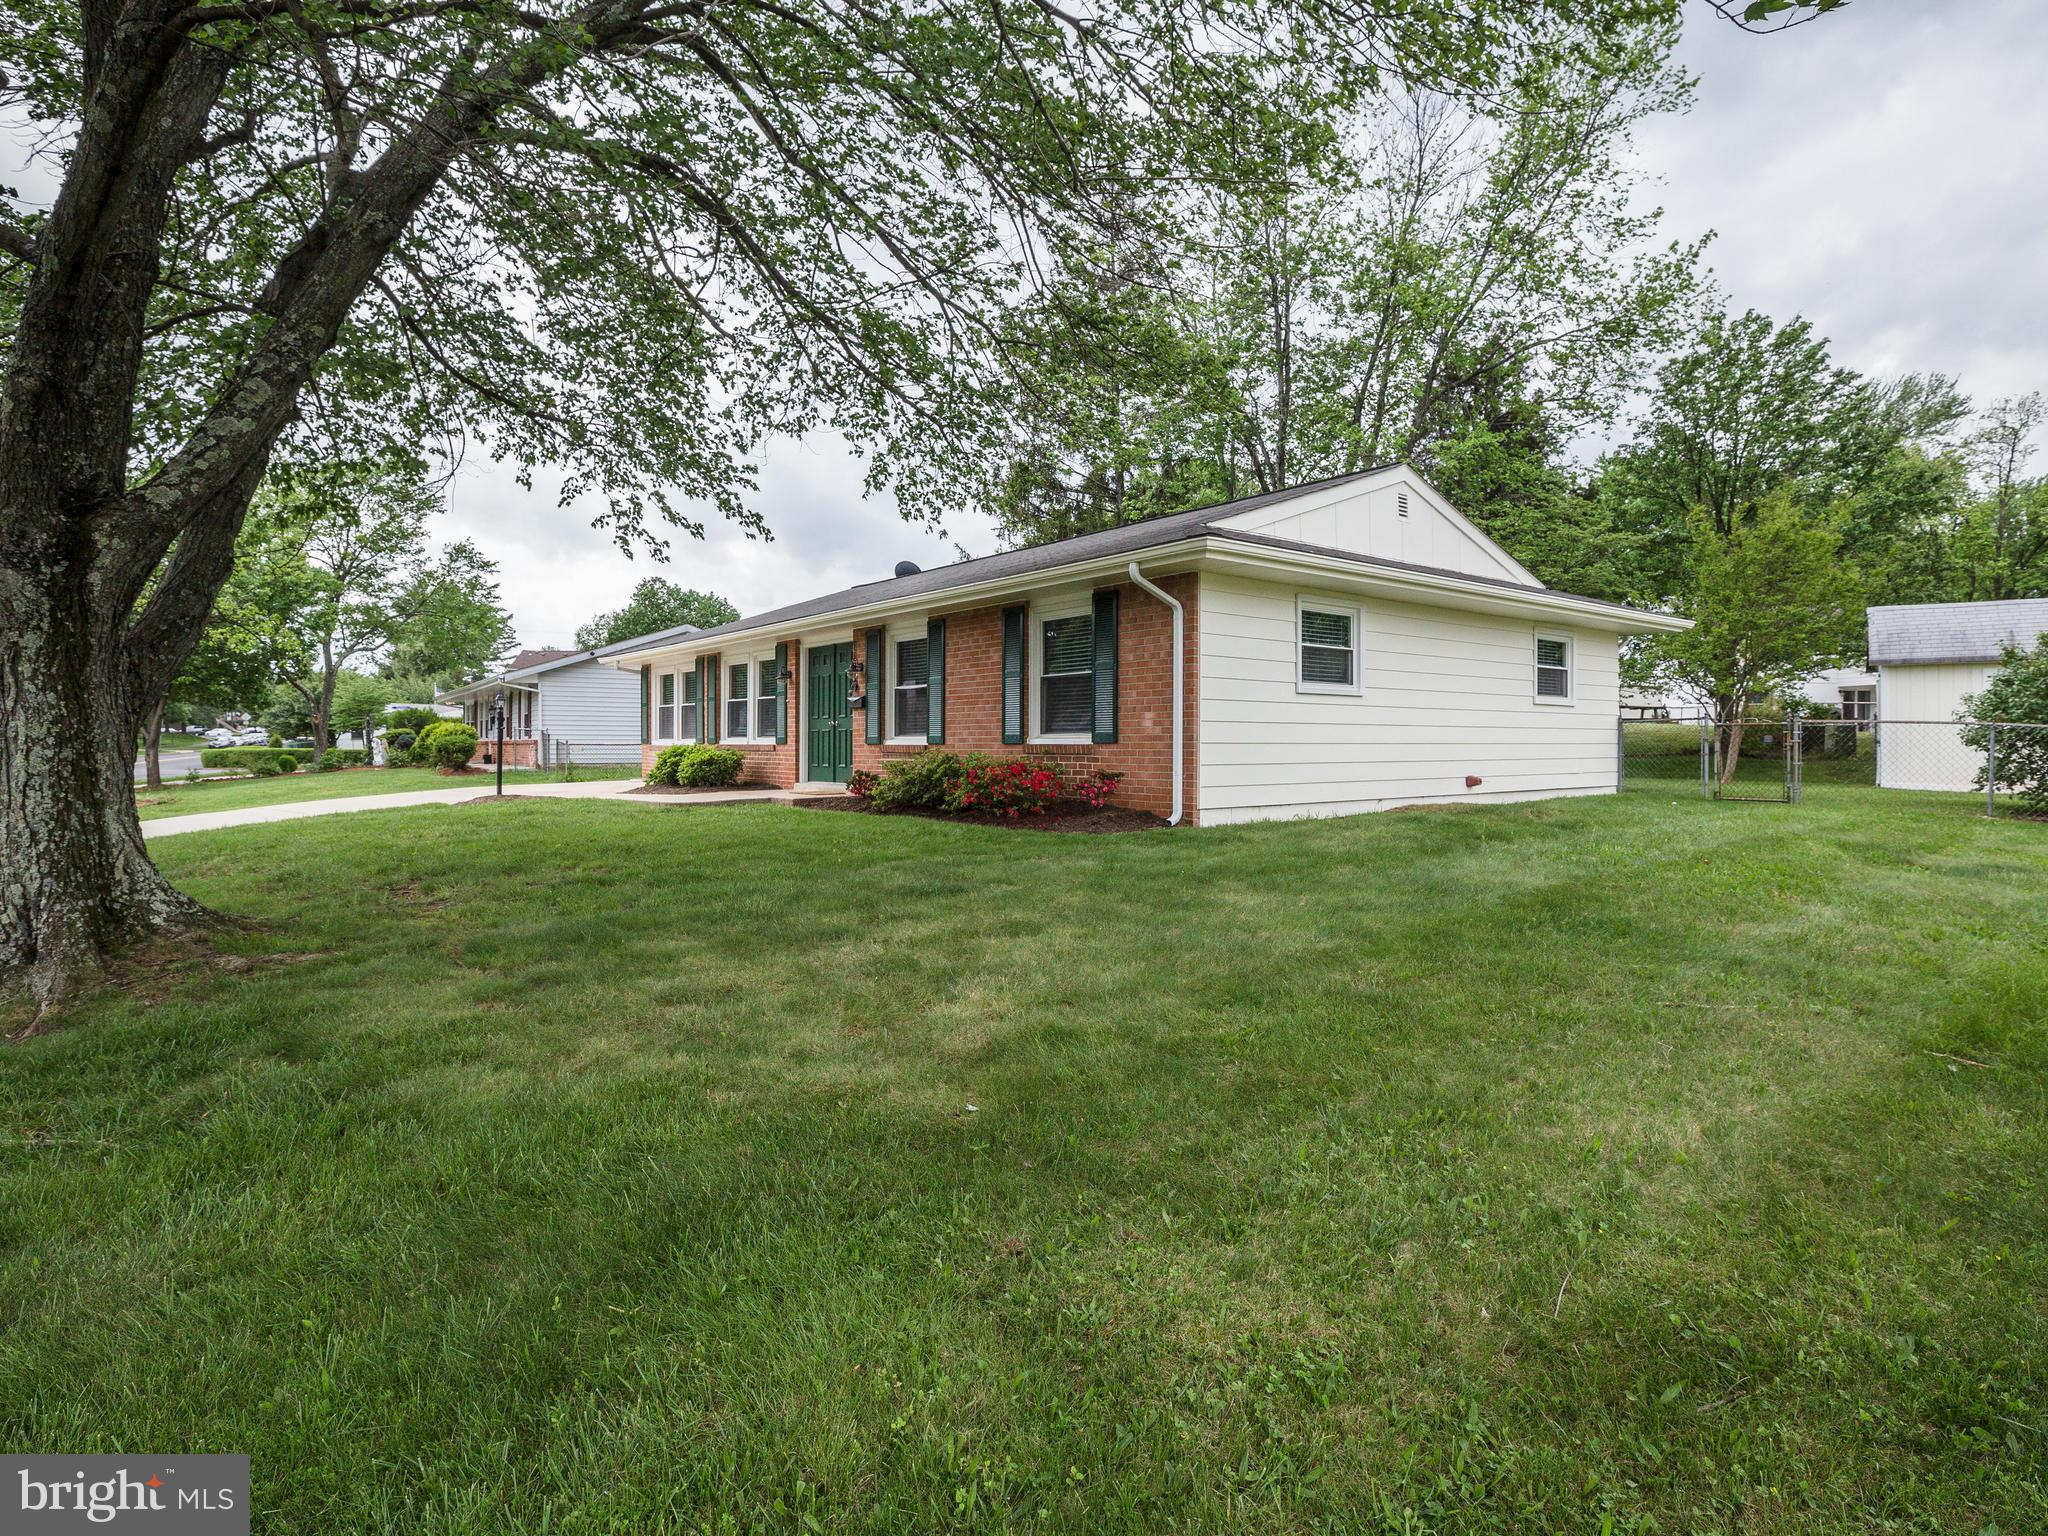 New on the market! 4 bed/2 bath rambler, HW floors, kitchen w/maple cabinets, corian counters, ss appliances.  Updated baths, full laundry room, newer HWH, windows. Fenced in yard, storage shed, patio, backyard perfect for entertaining. 1/2 mile to elementary school and WO&D trail, no HOA.  Great location and ready to move in!!